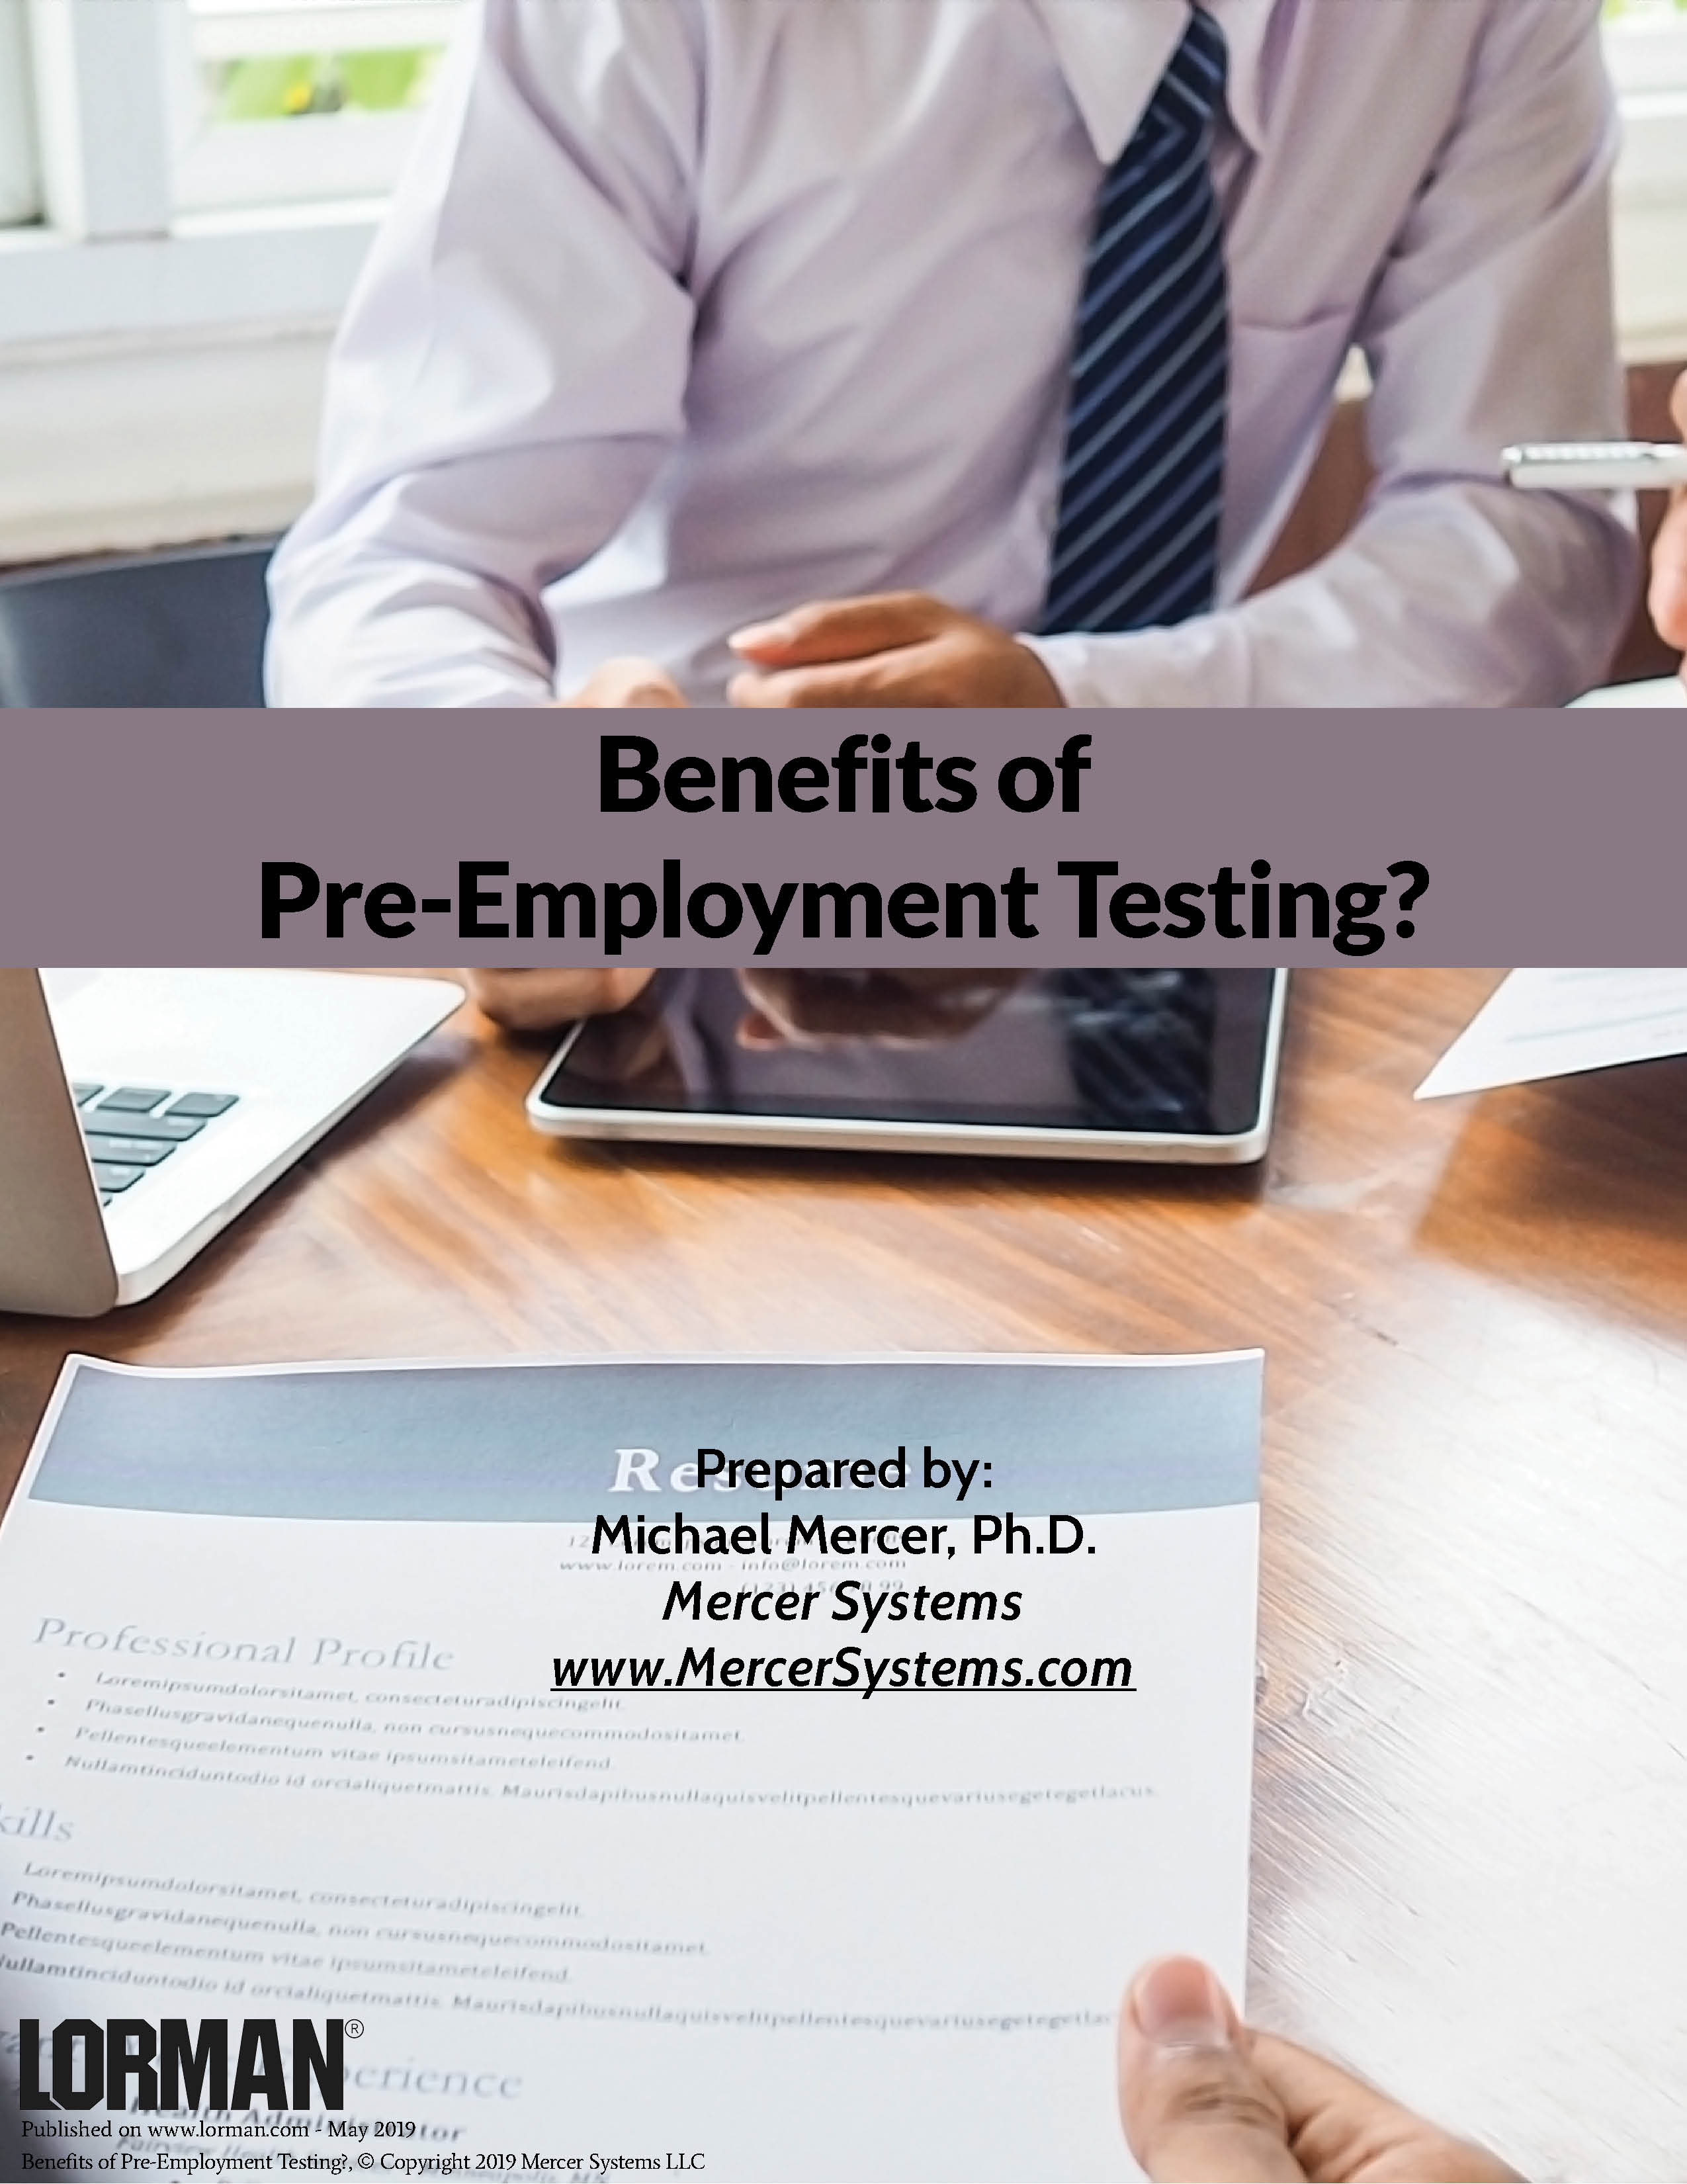 Benefits of Pre-Employment Testing?